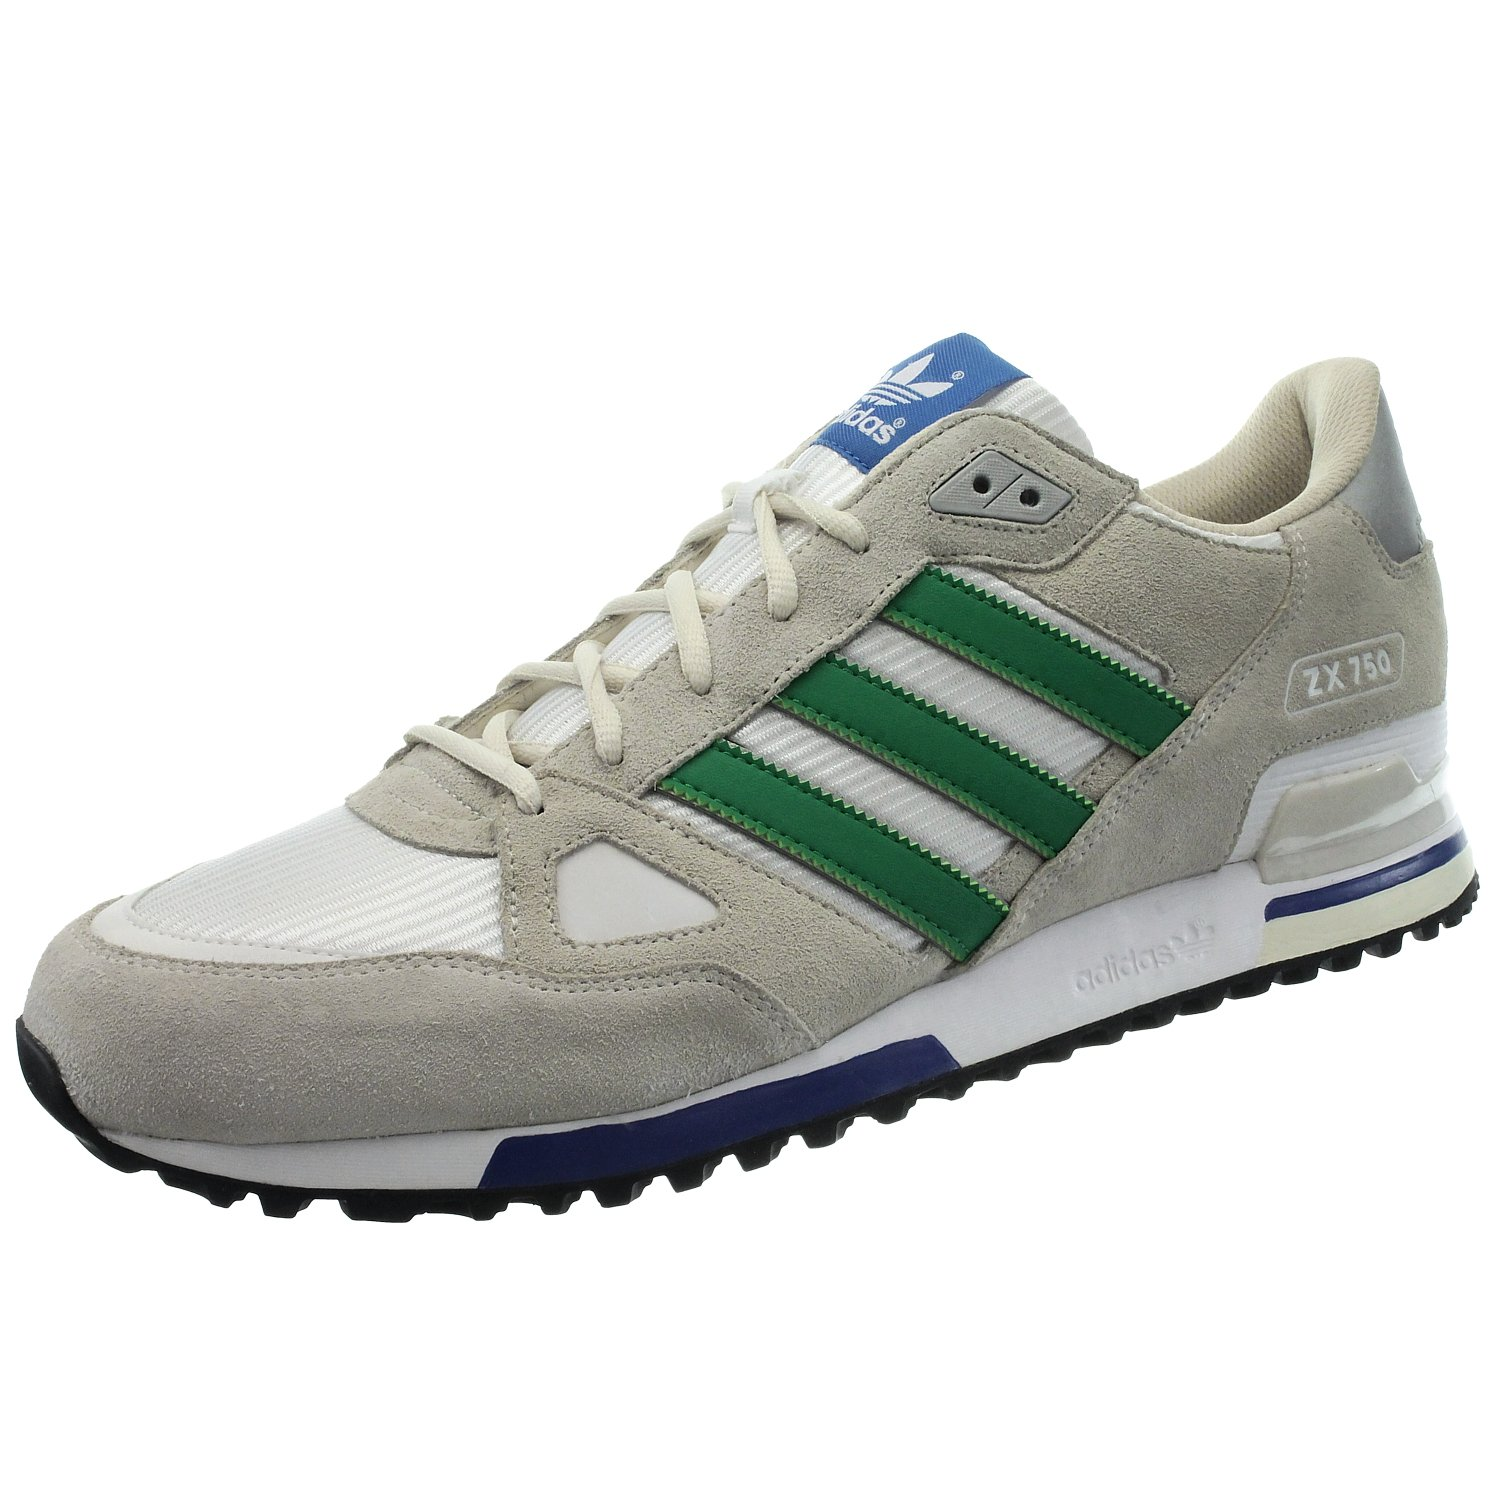 switzerland adidas originals zx 750 men sneakers for men 2e45b 1f2cc  where  can i buy adidas mens b2485 low top sneakers white size 13 uk amazon shoes 60b5aa56b